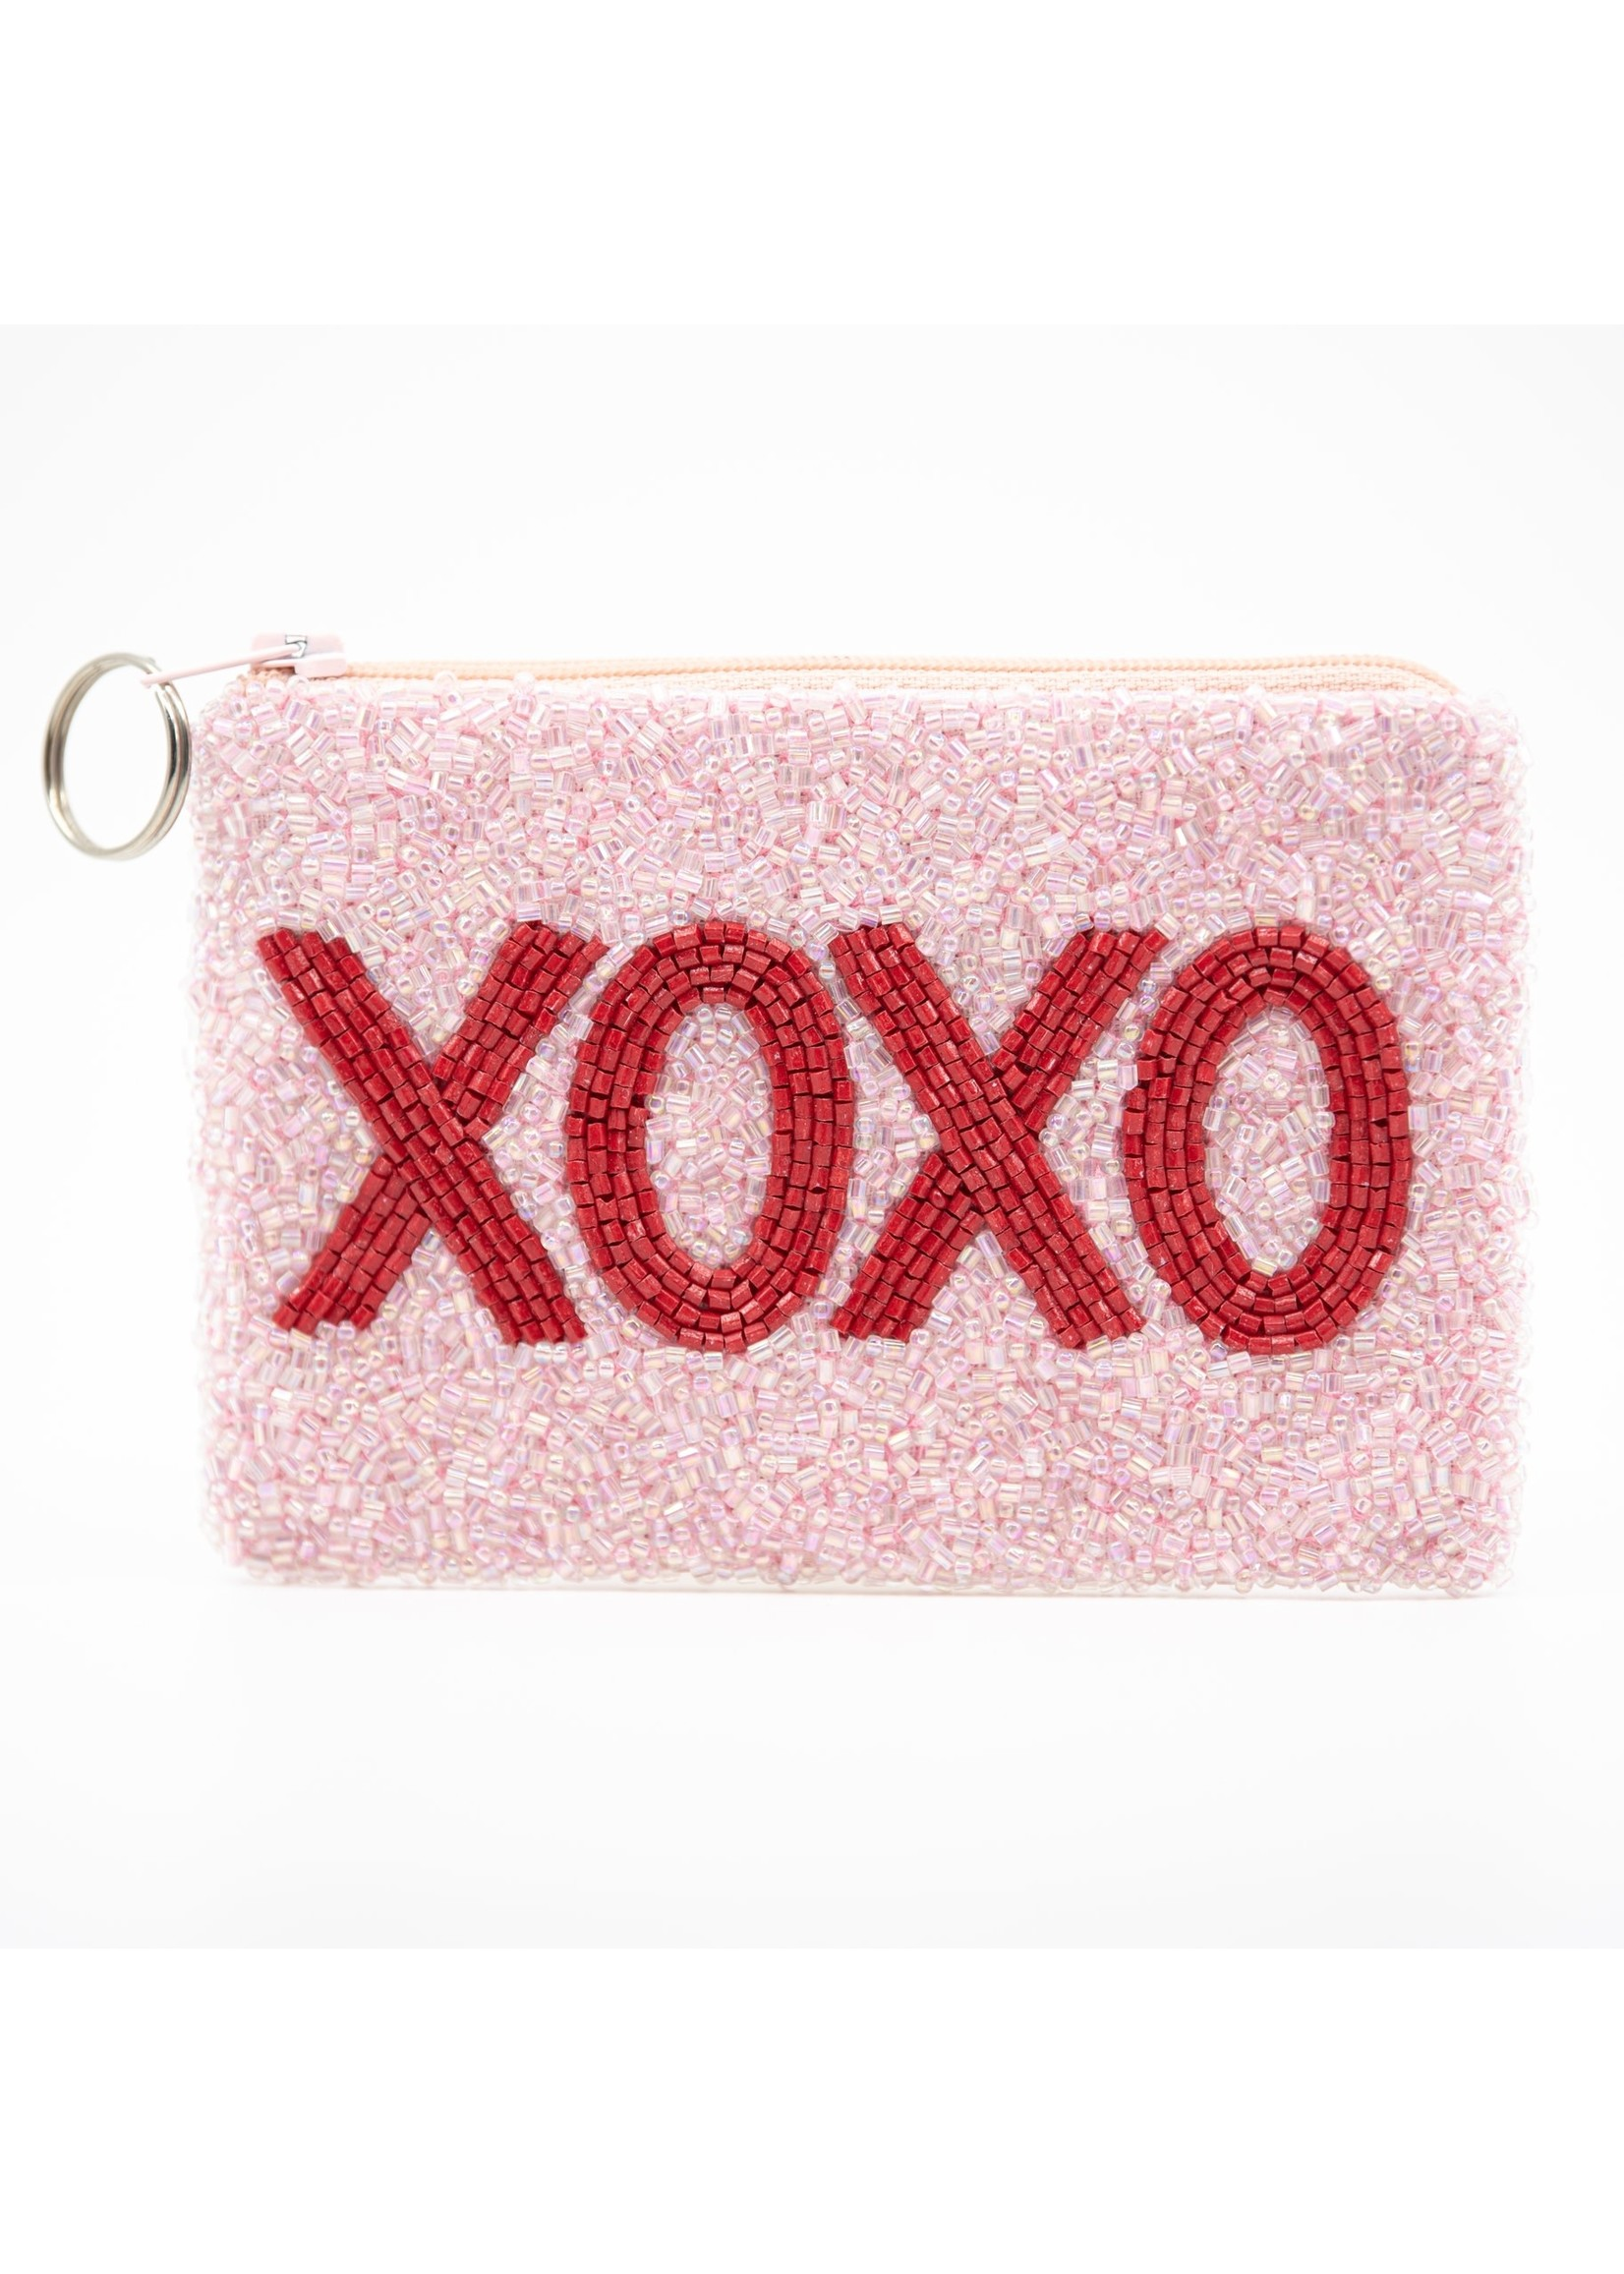 XOXO coin purse red on pink